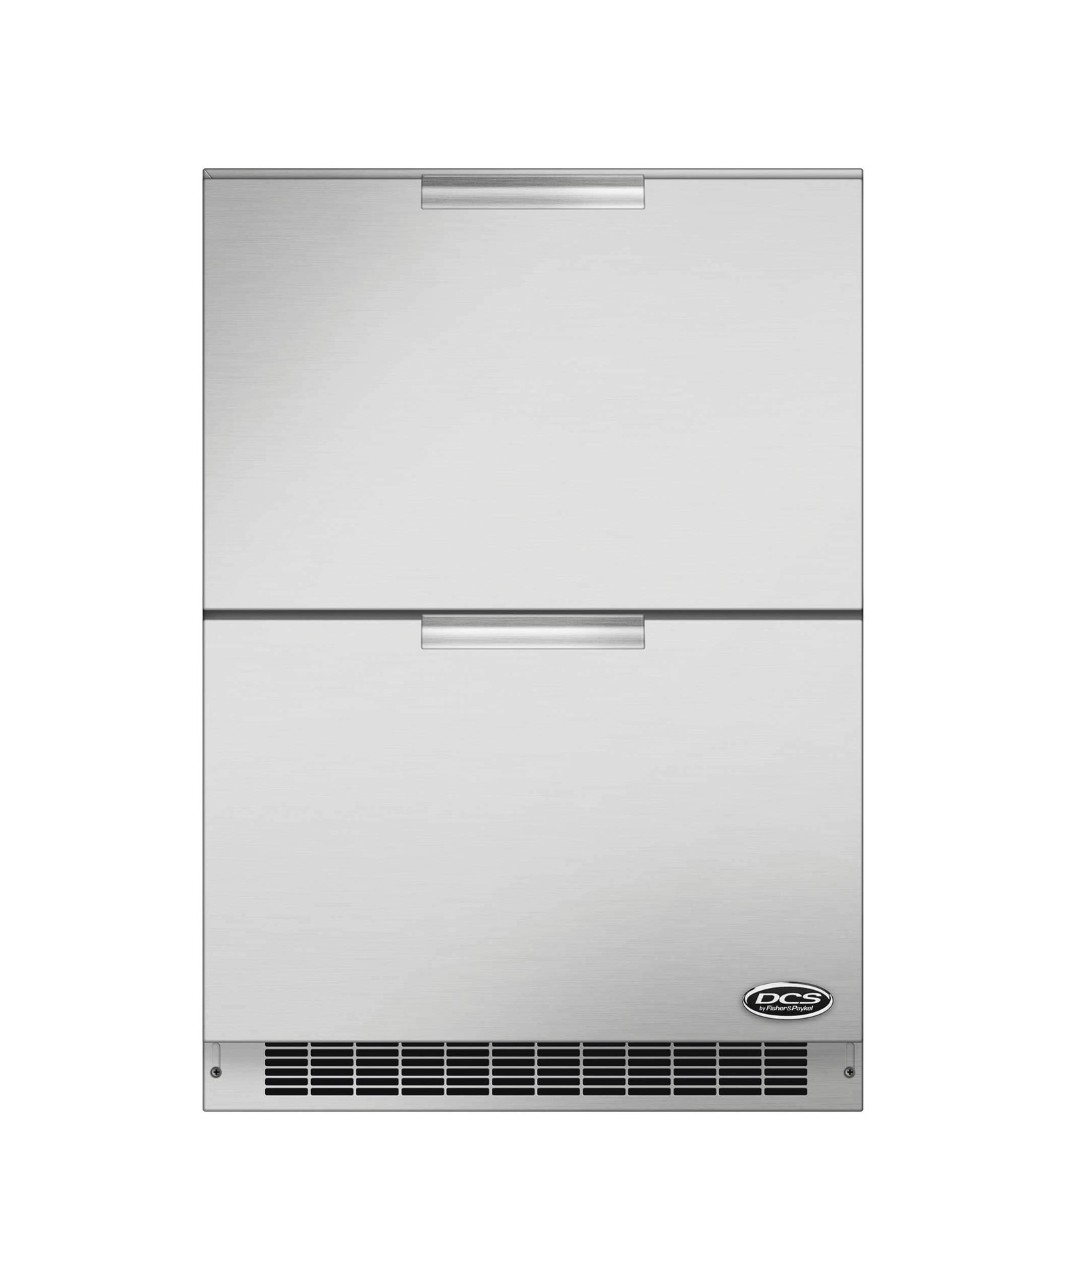 DCS Refrigerators & Chillers Visual List Item Image